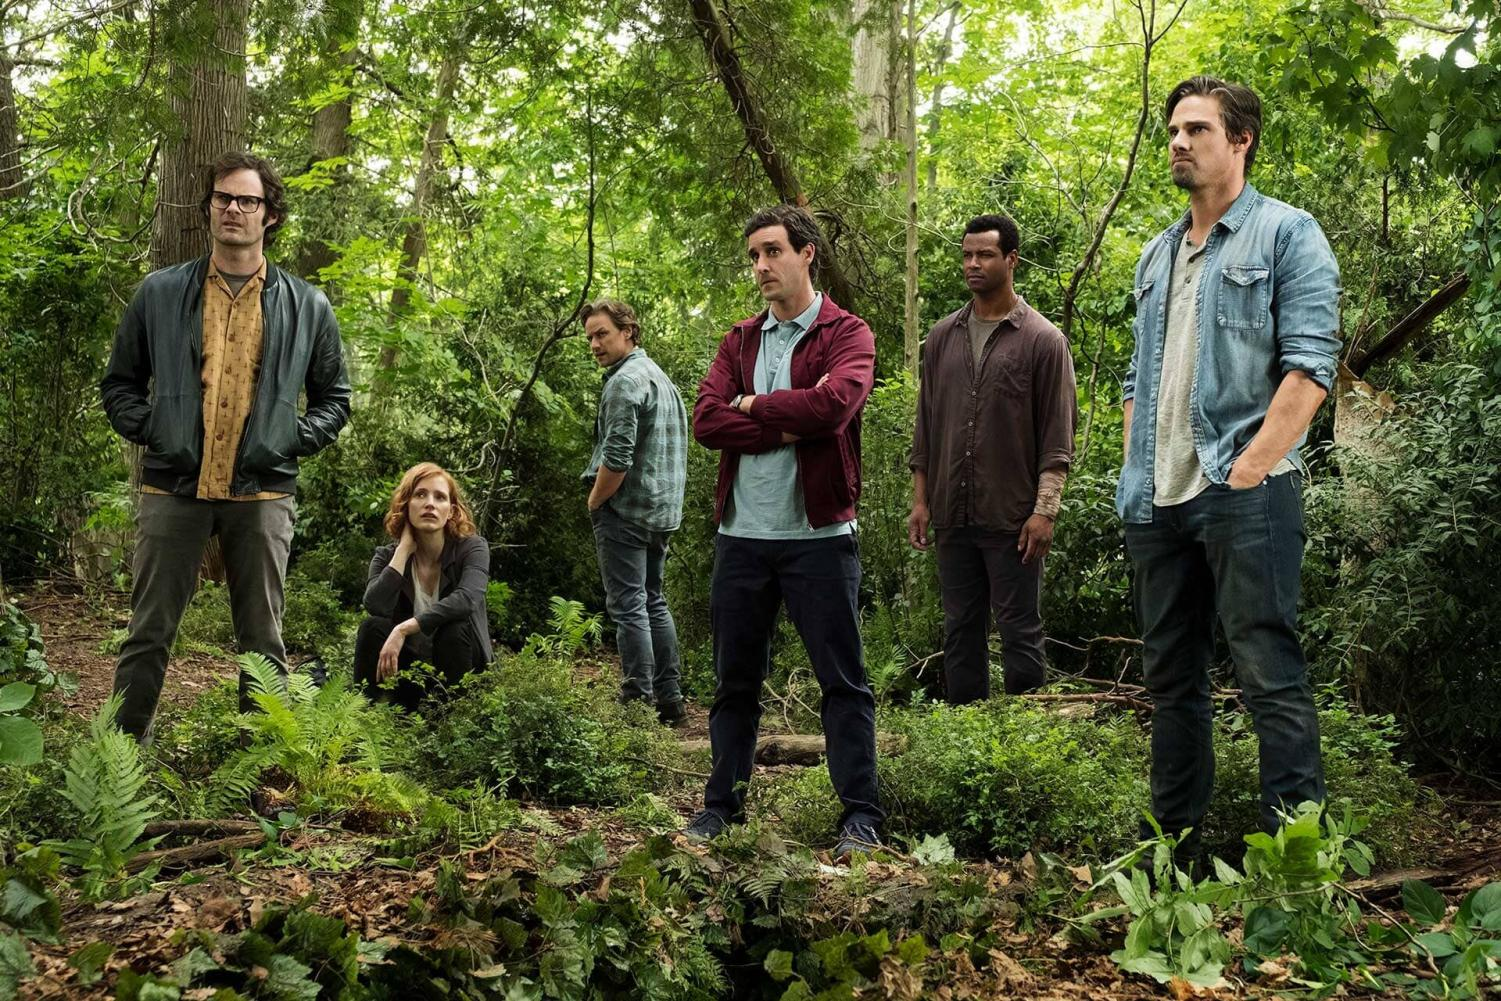 Members of The Losers Club as they appear in